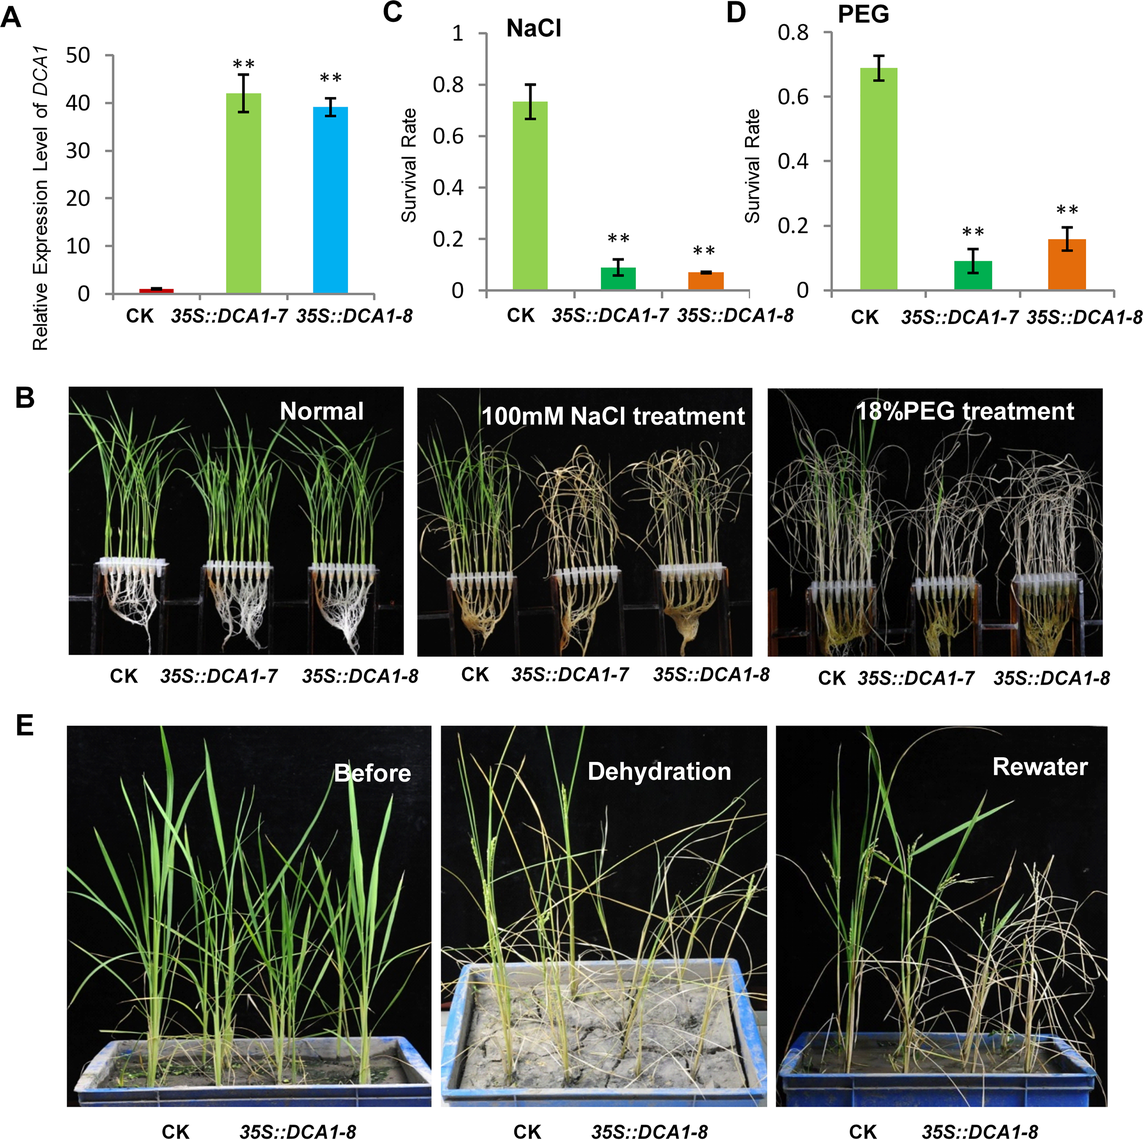 Overexpression of <i>DCA1</i> reduces stress tolerance in rice.